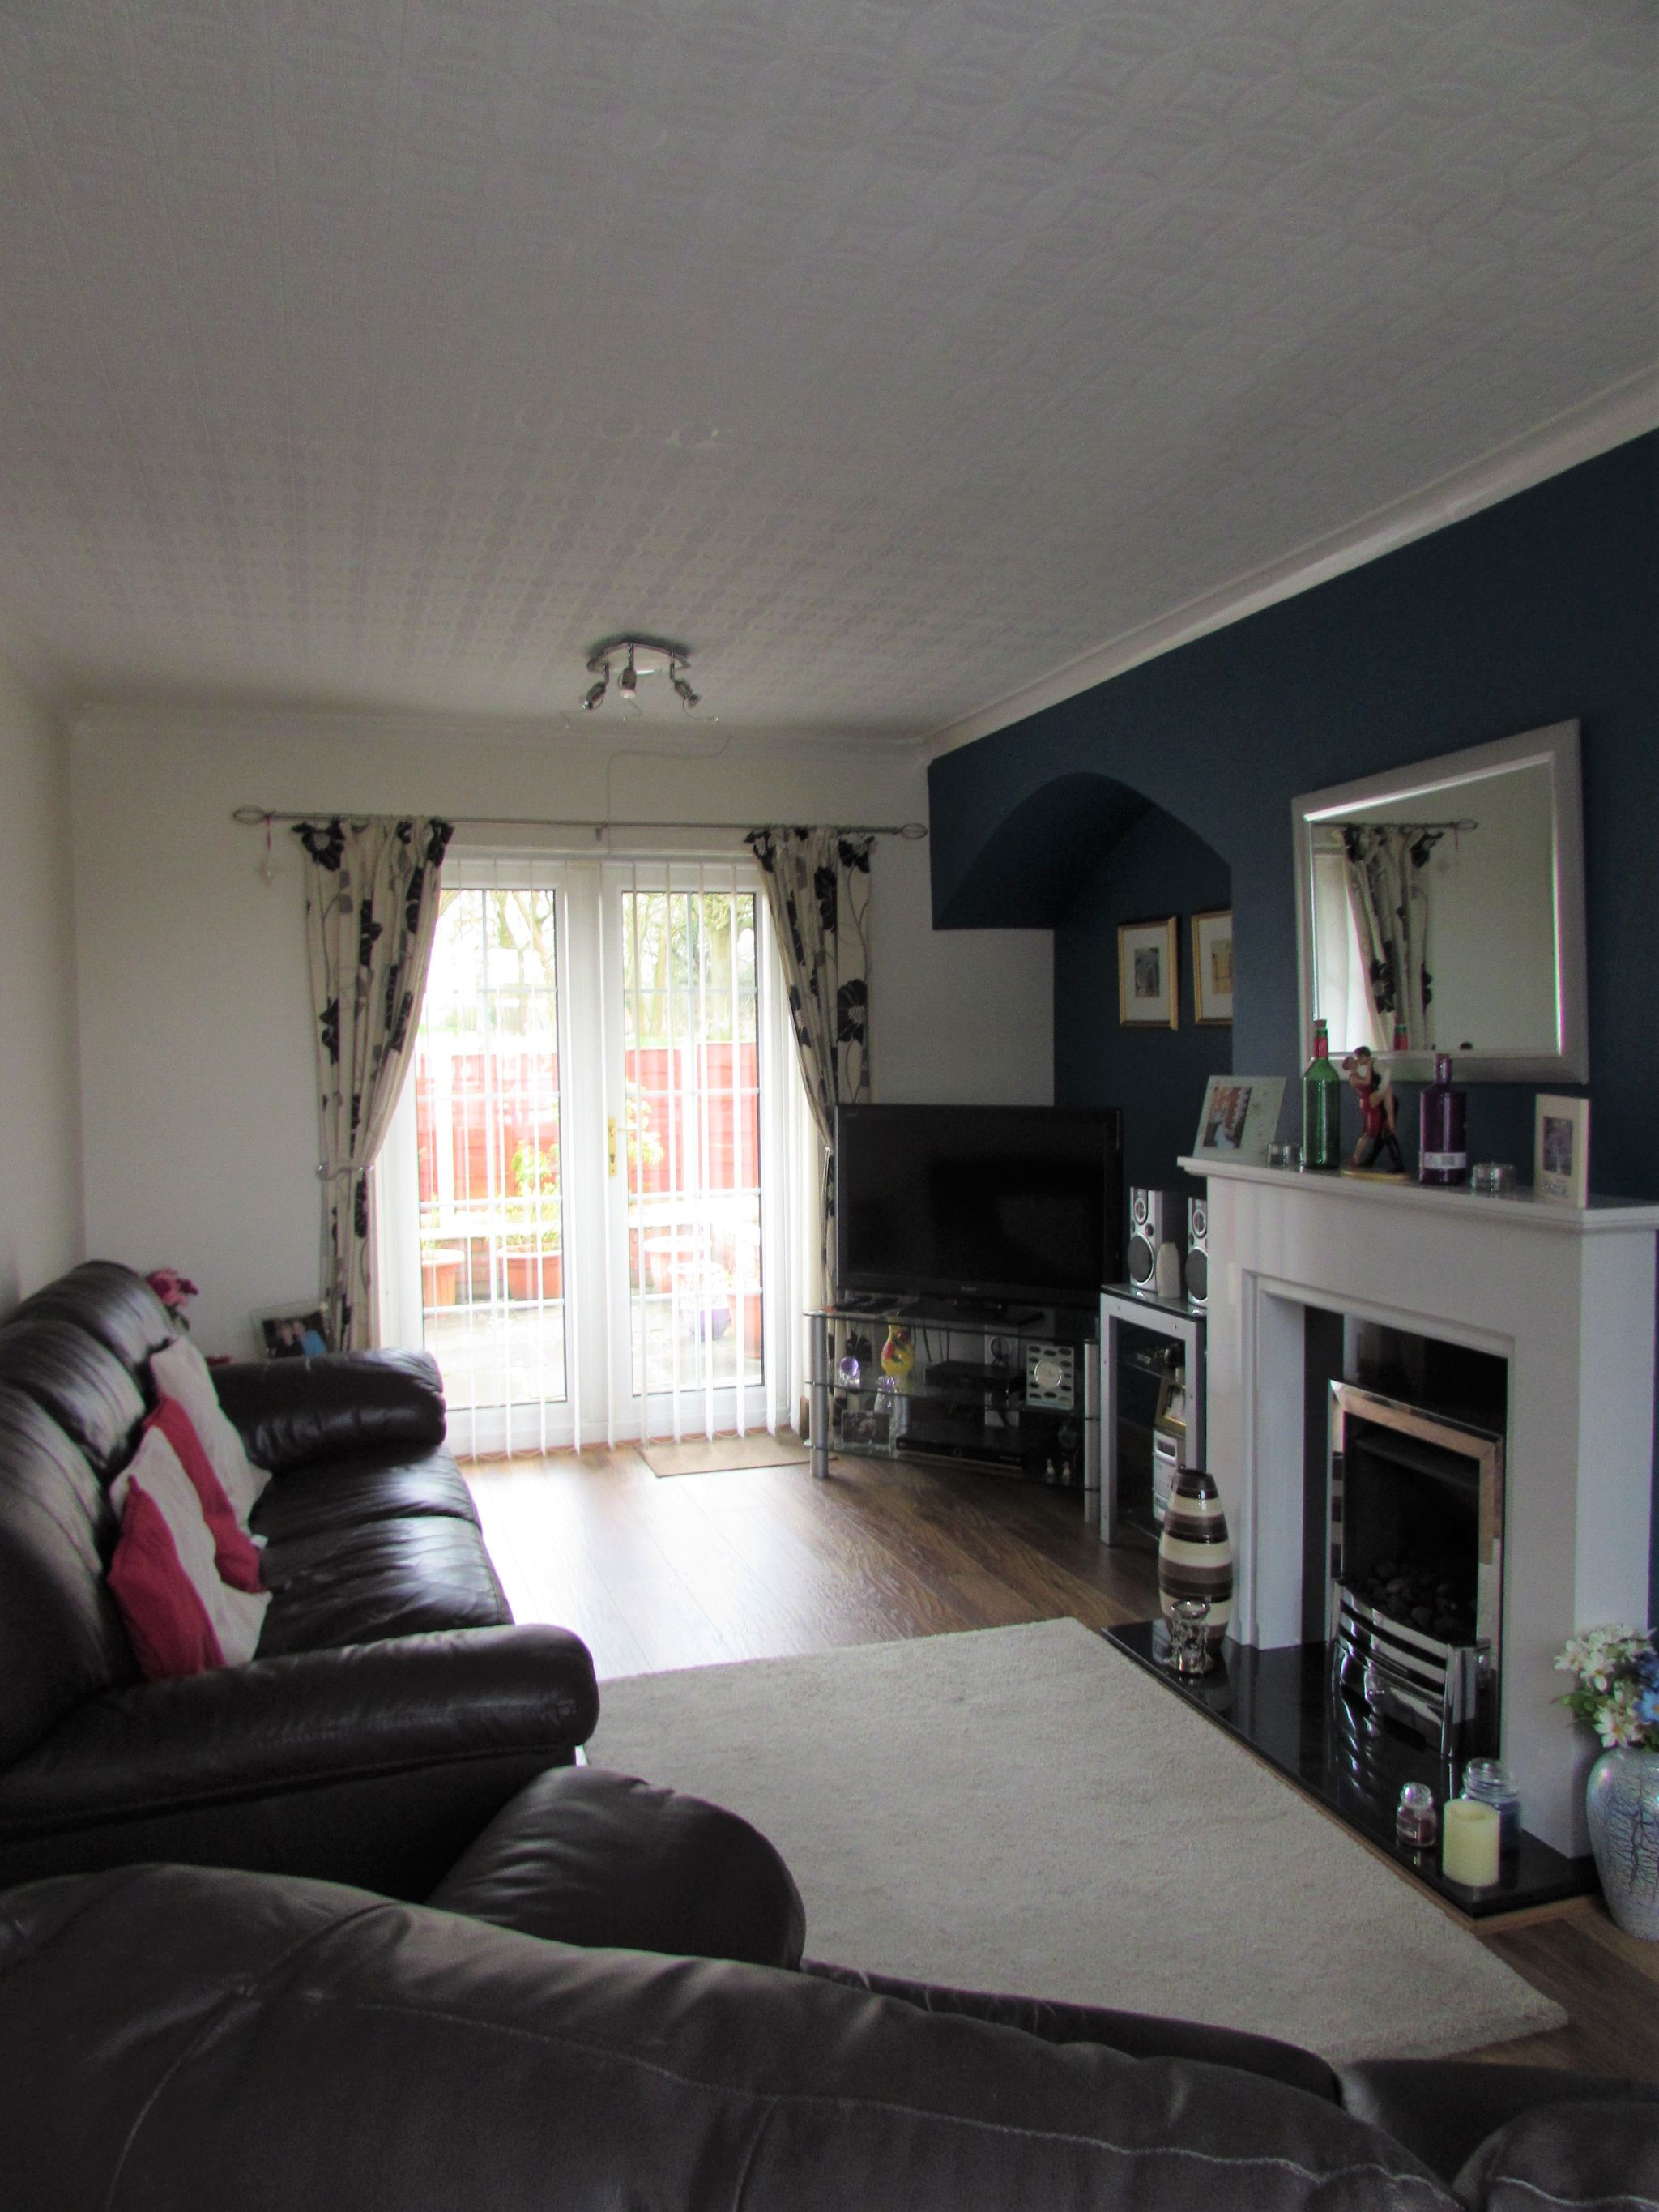 3 Bedroom Mid Terraced House For Sale - Living Area